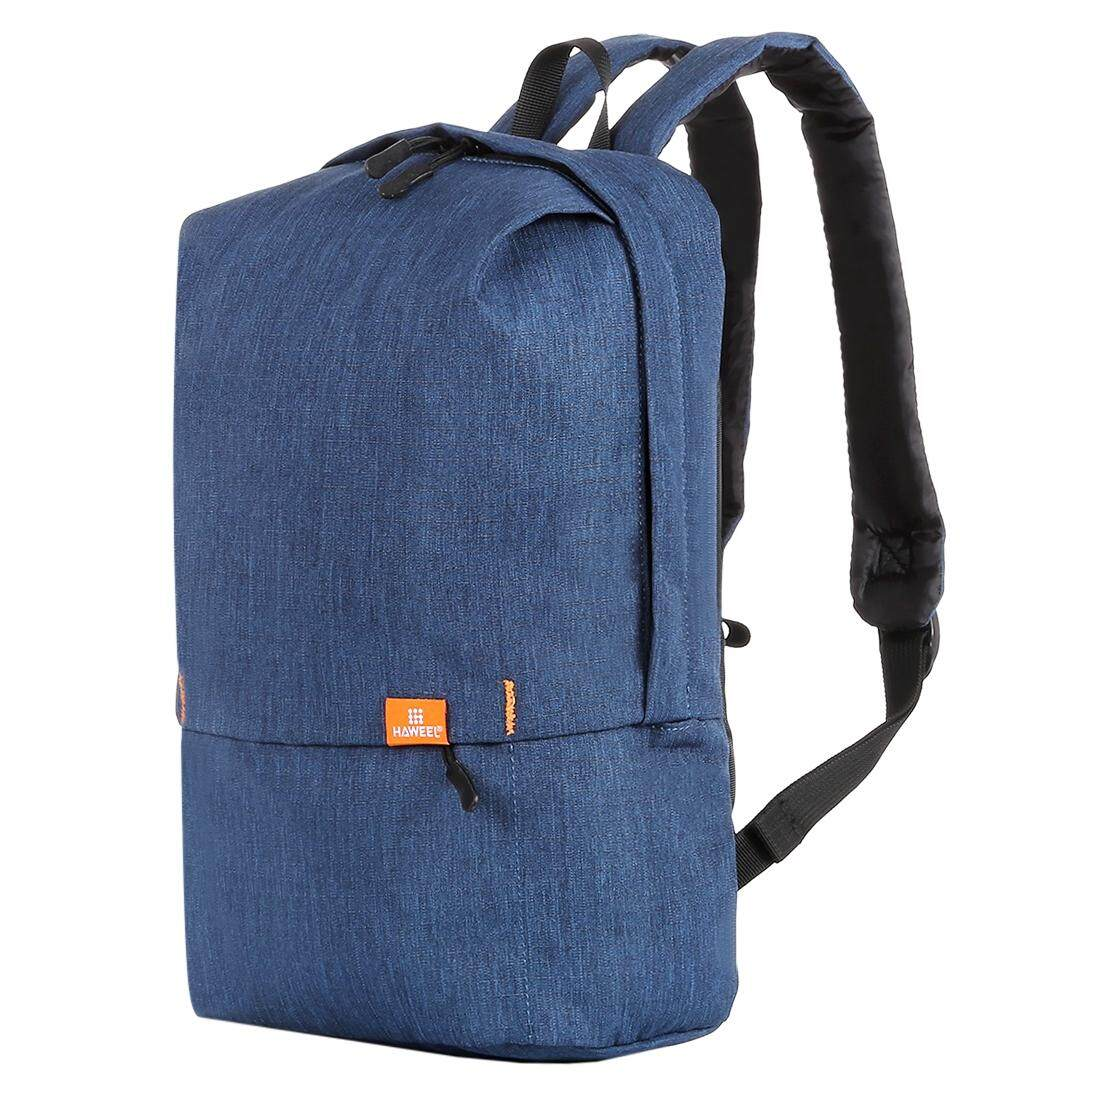 HAWEEL 10L Backpack Colorful Unisex Leisure Sports Chest Pack Travel Bags d91b681e8269a